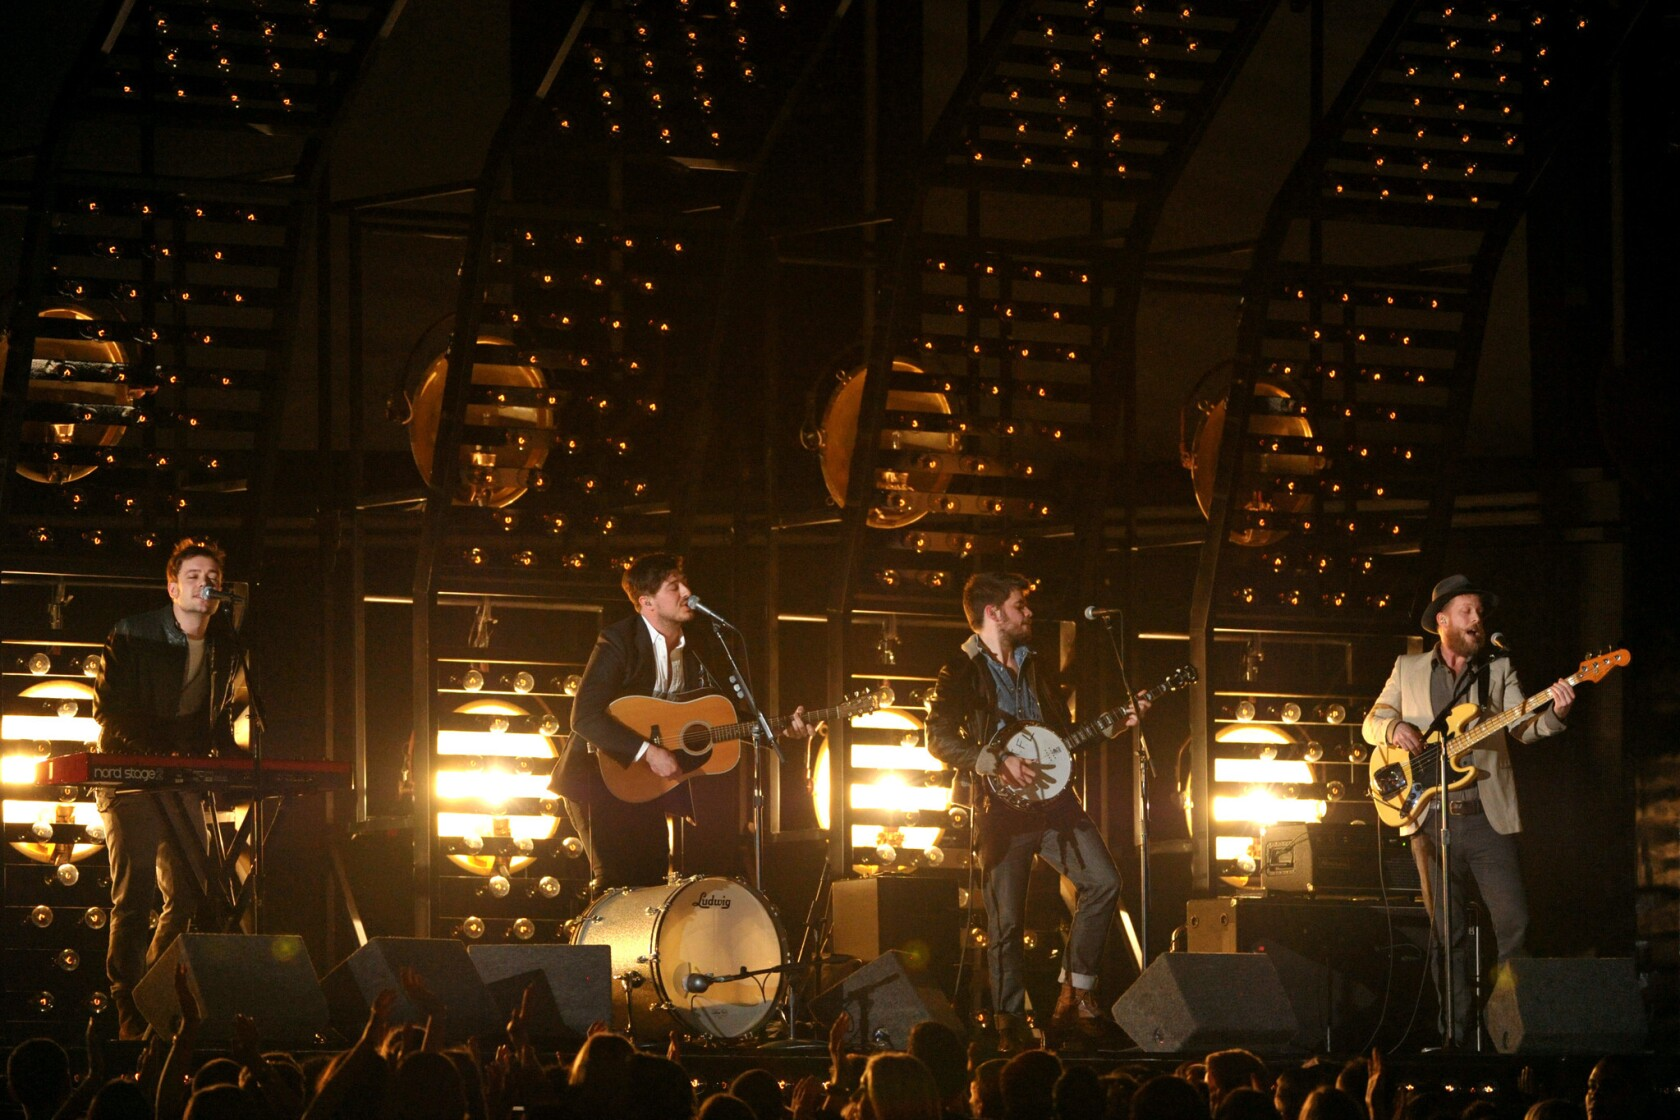 Grammys 2013: Complete list of nominees and winners - Los